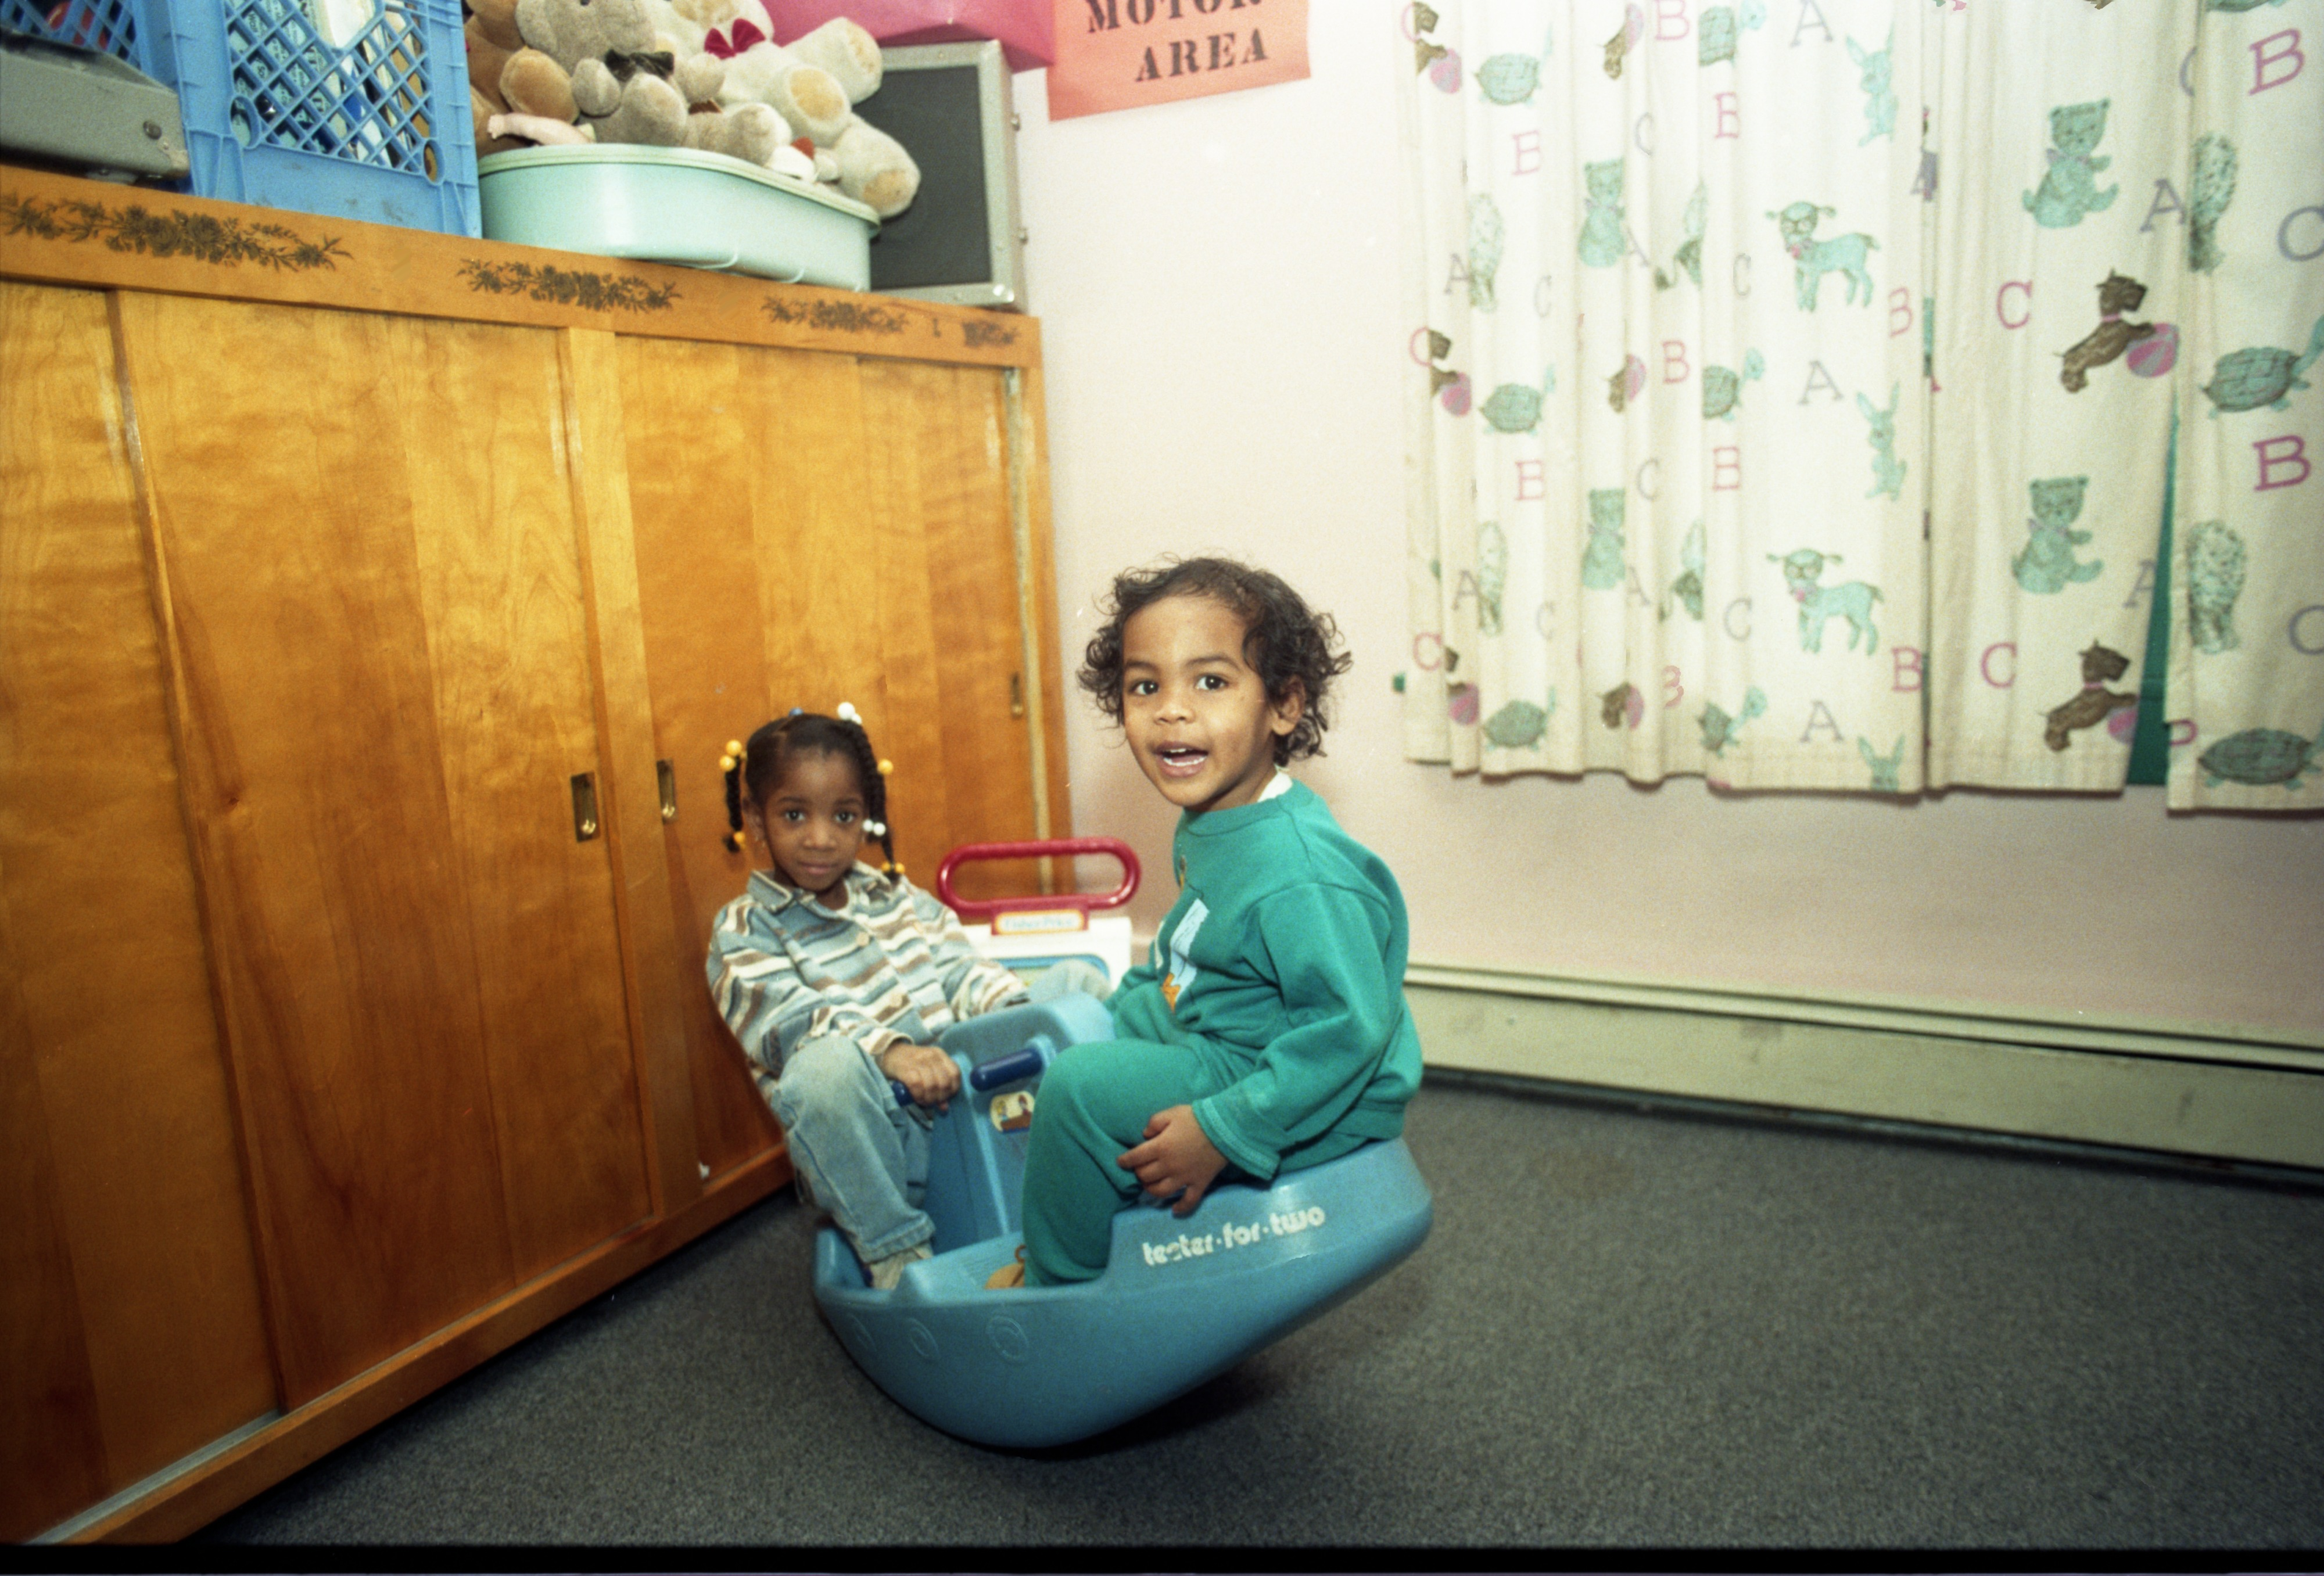 Kids Play At Noah's Ark Learning Center In Ypsilanti, March 22, 1995 image